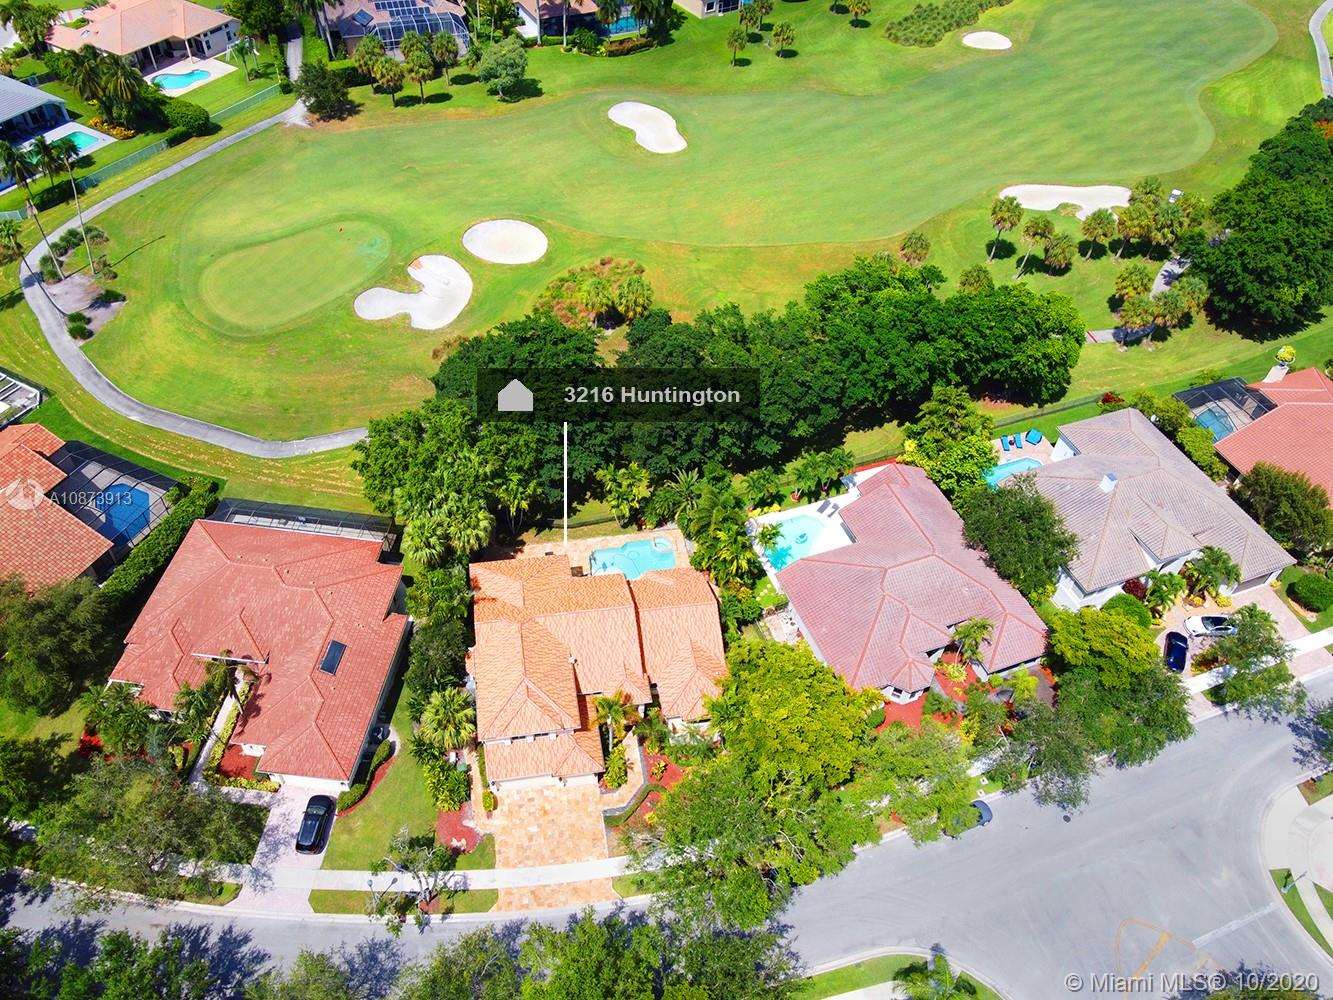 Weston Hills - 3216 Huntington, Weston, FL 33332